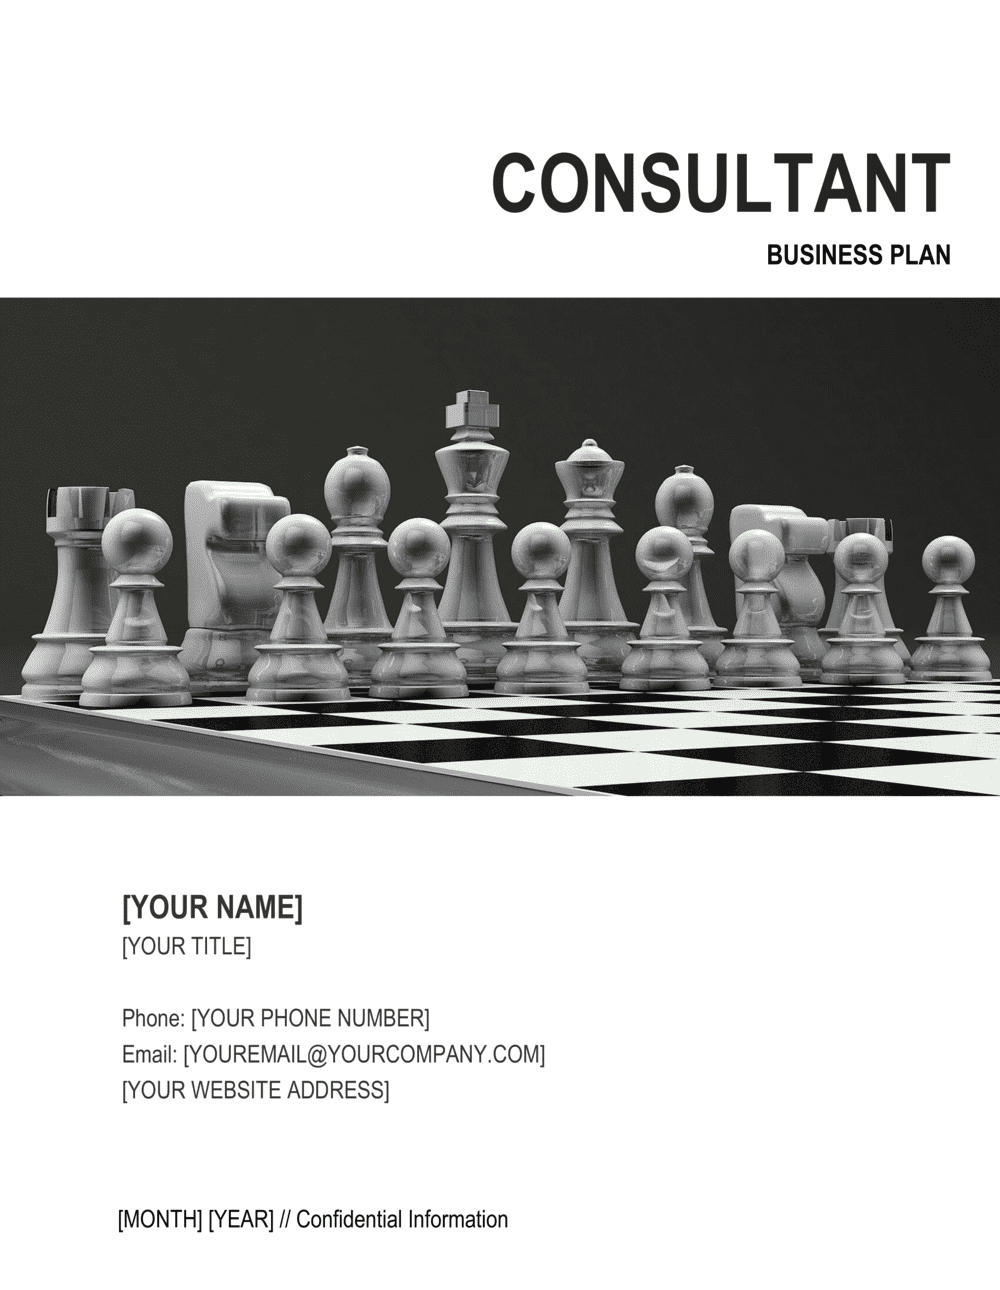 Business-in-a-Box's Consultant Business Plan Template